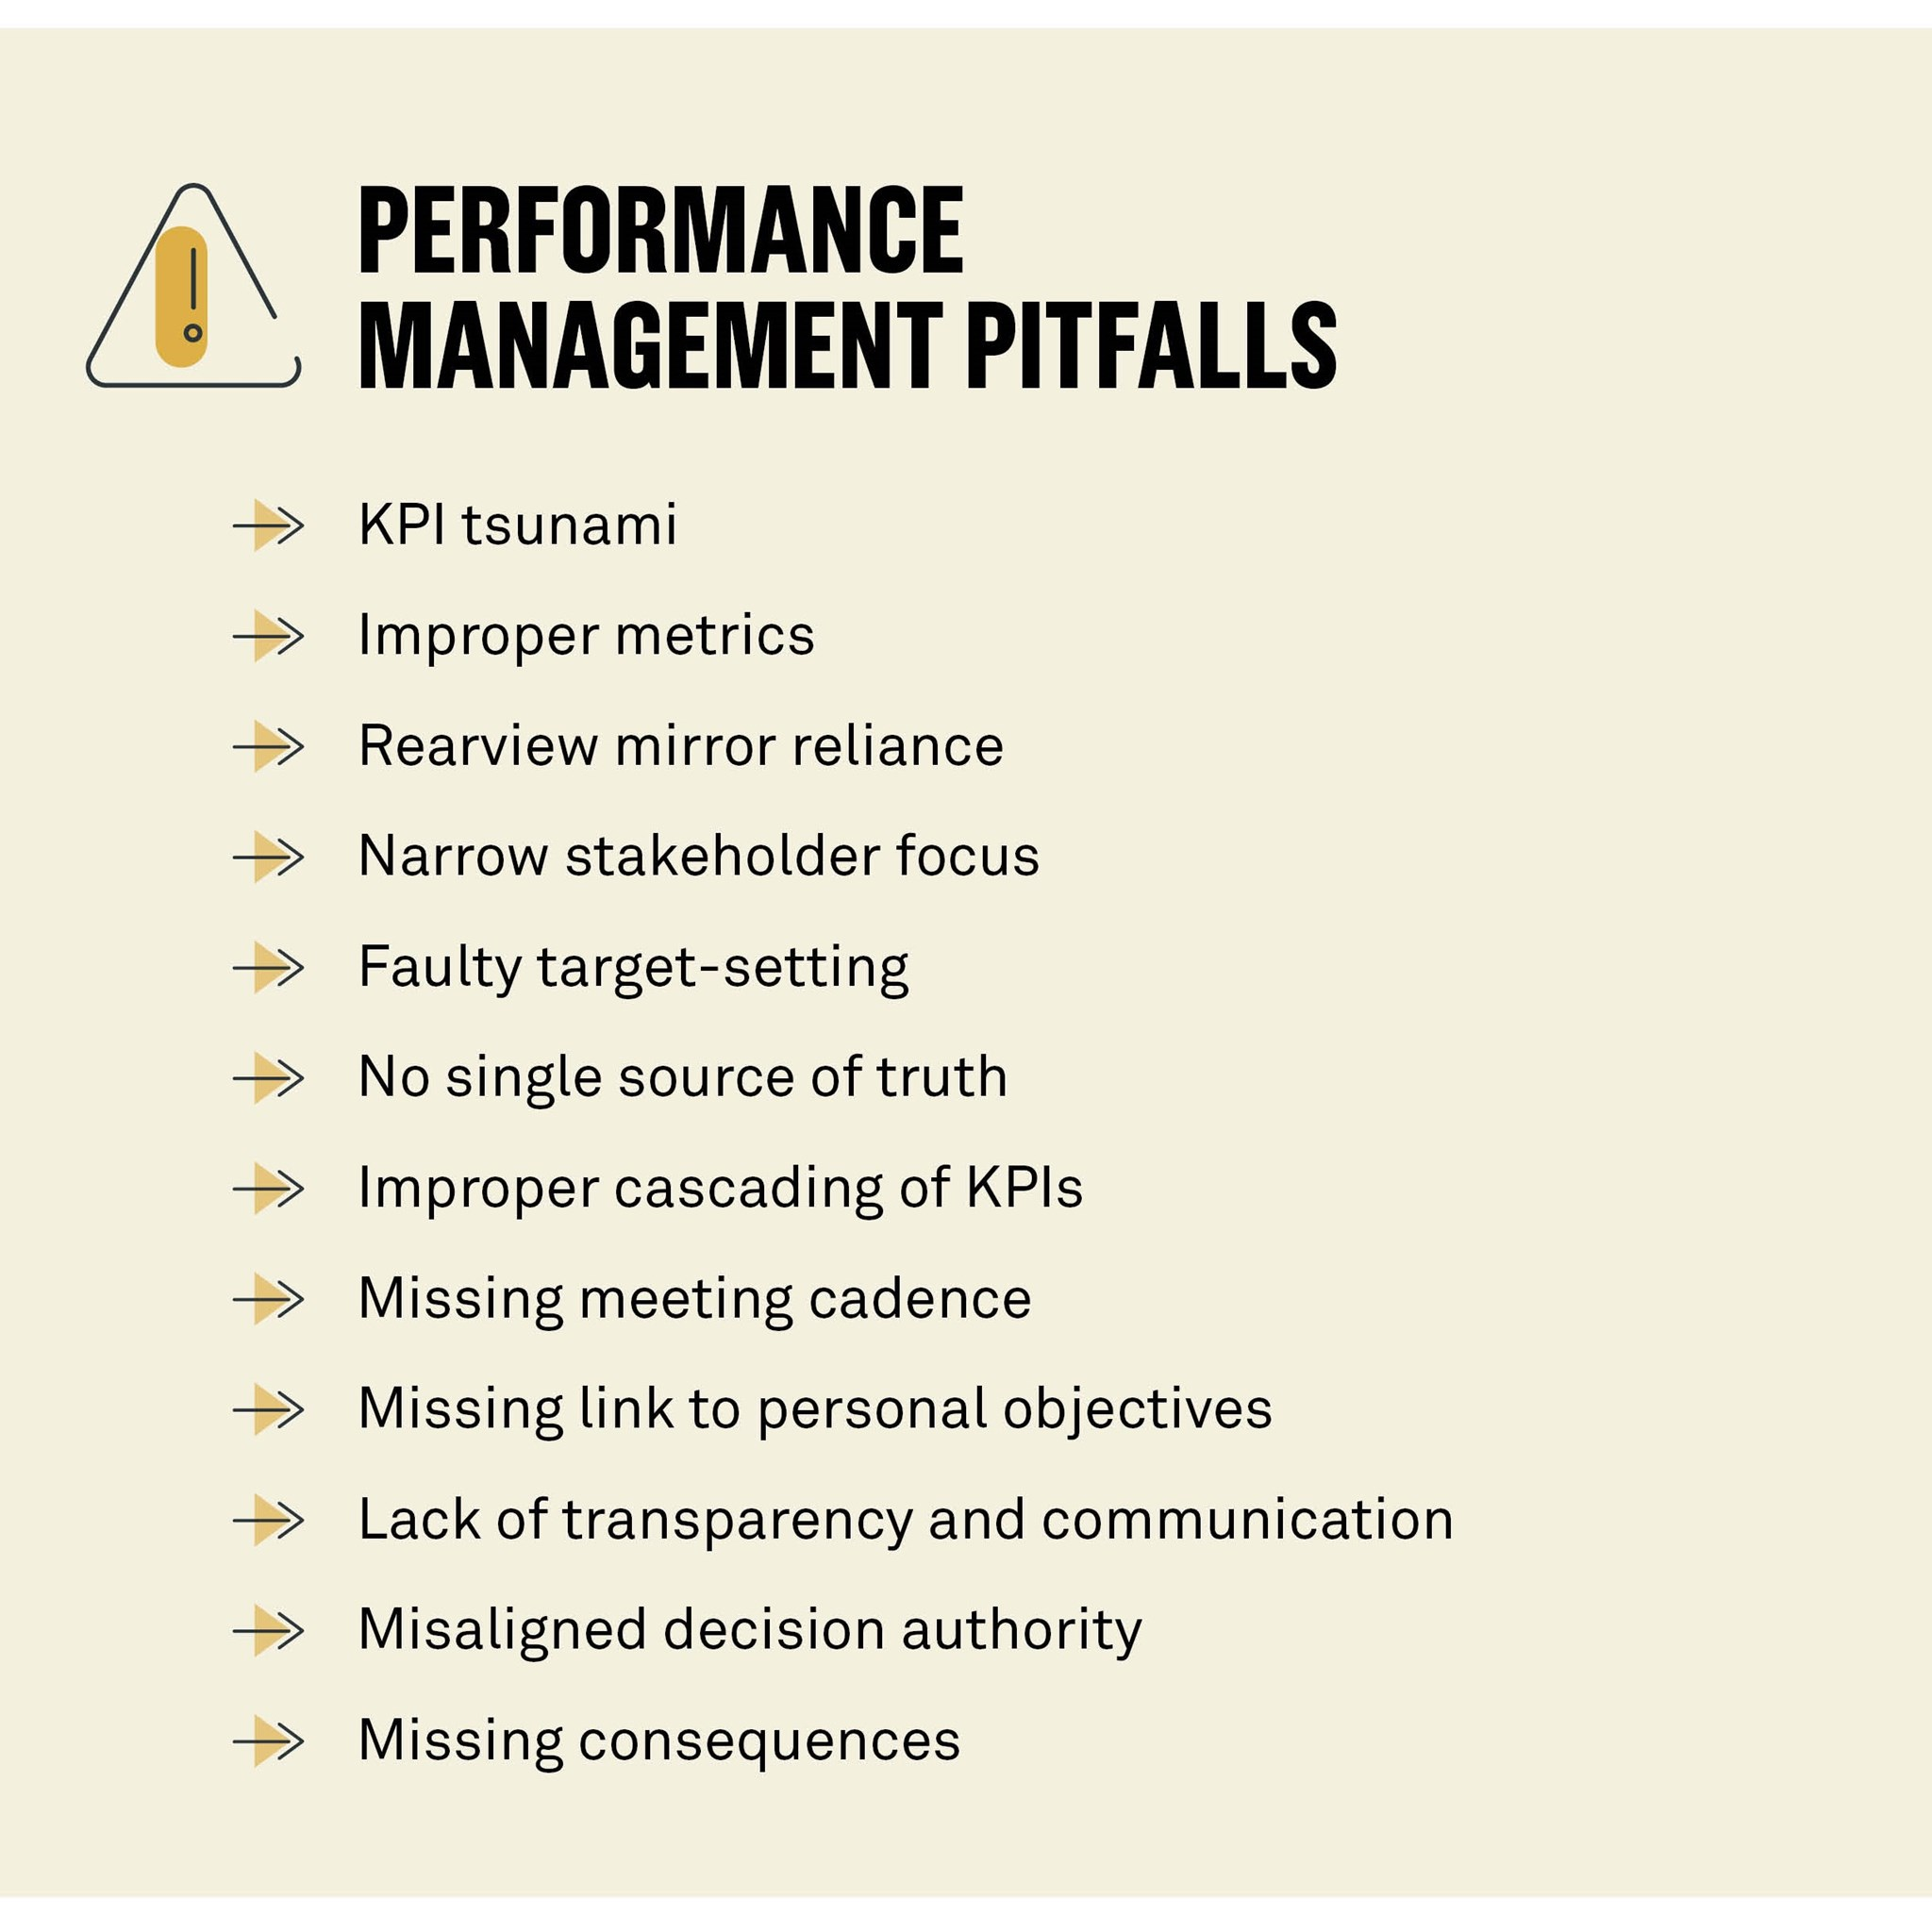 Organisations often fall victim to one of these common performance management pitfalls